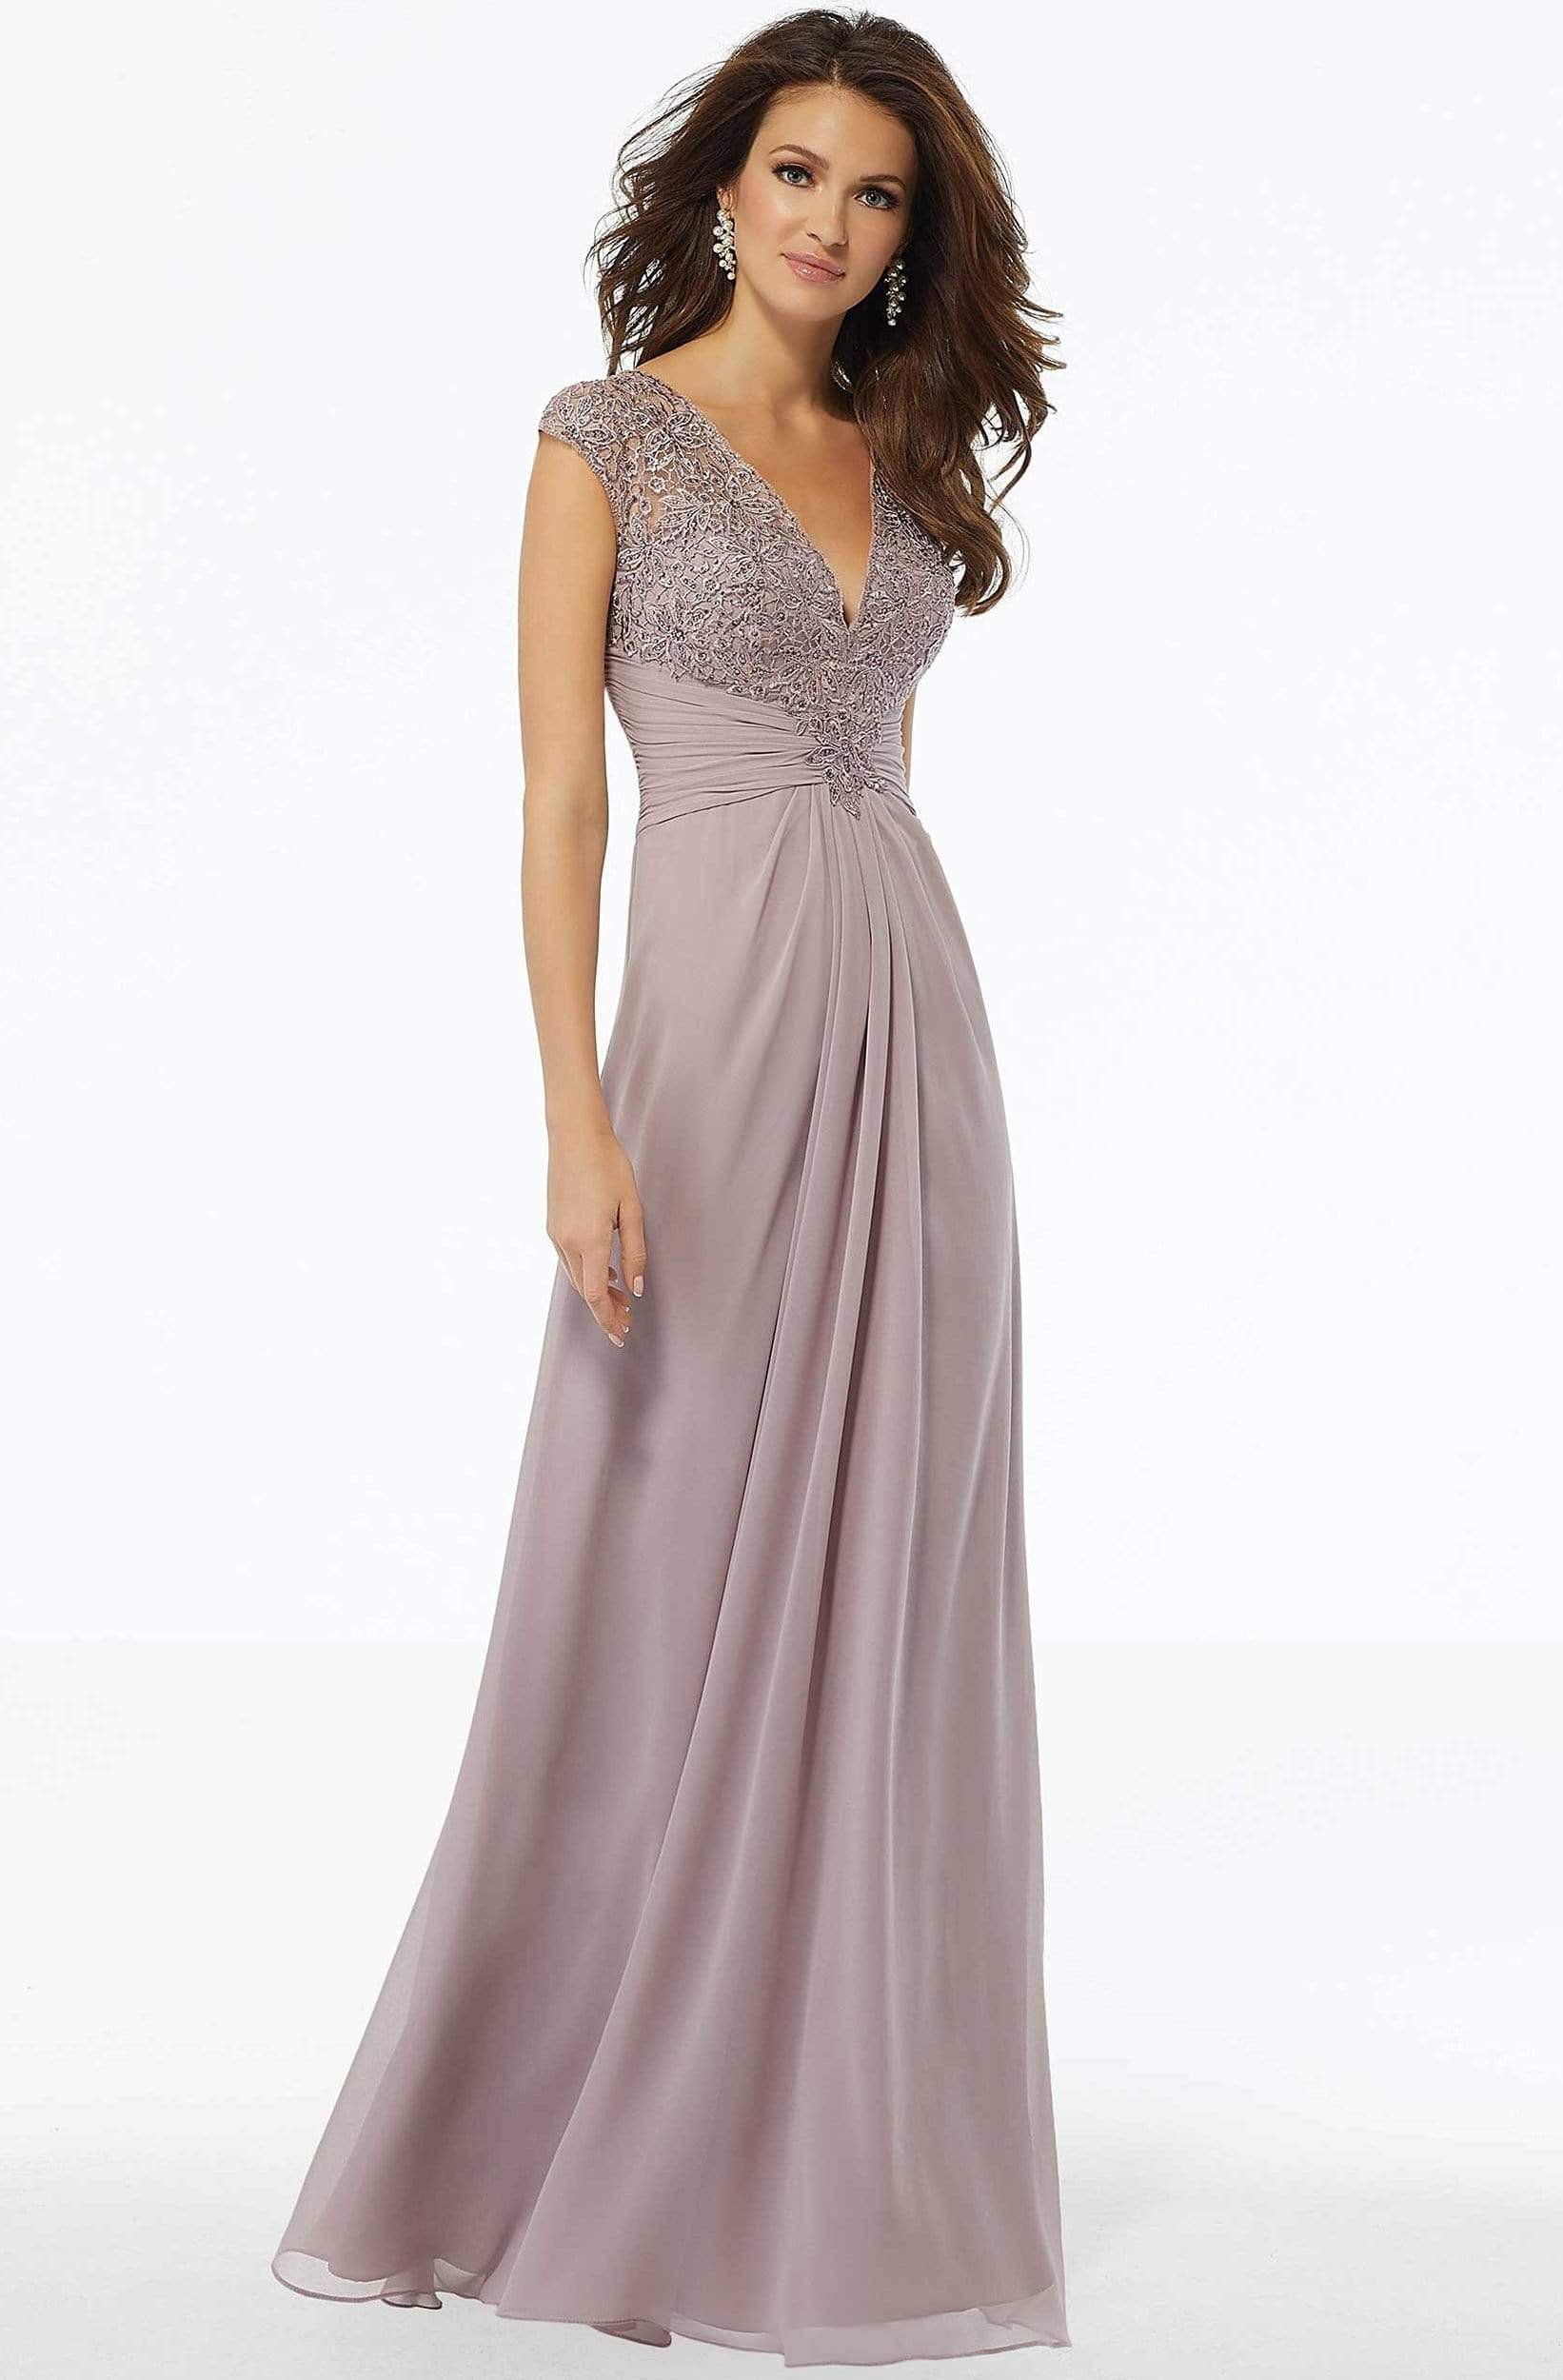 MGNY By Mori Lee - 72129 Beaded Lace Ruched Chiffon Dress Evening Dresses 2 / Dusty Lilac